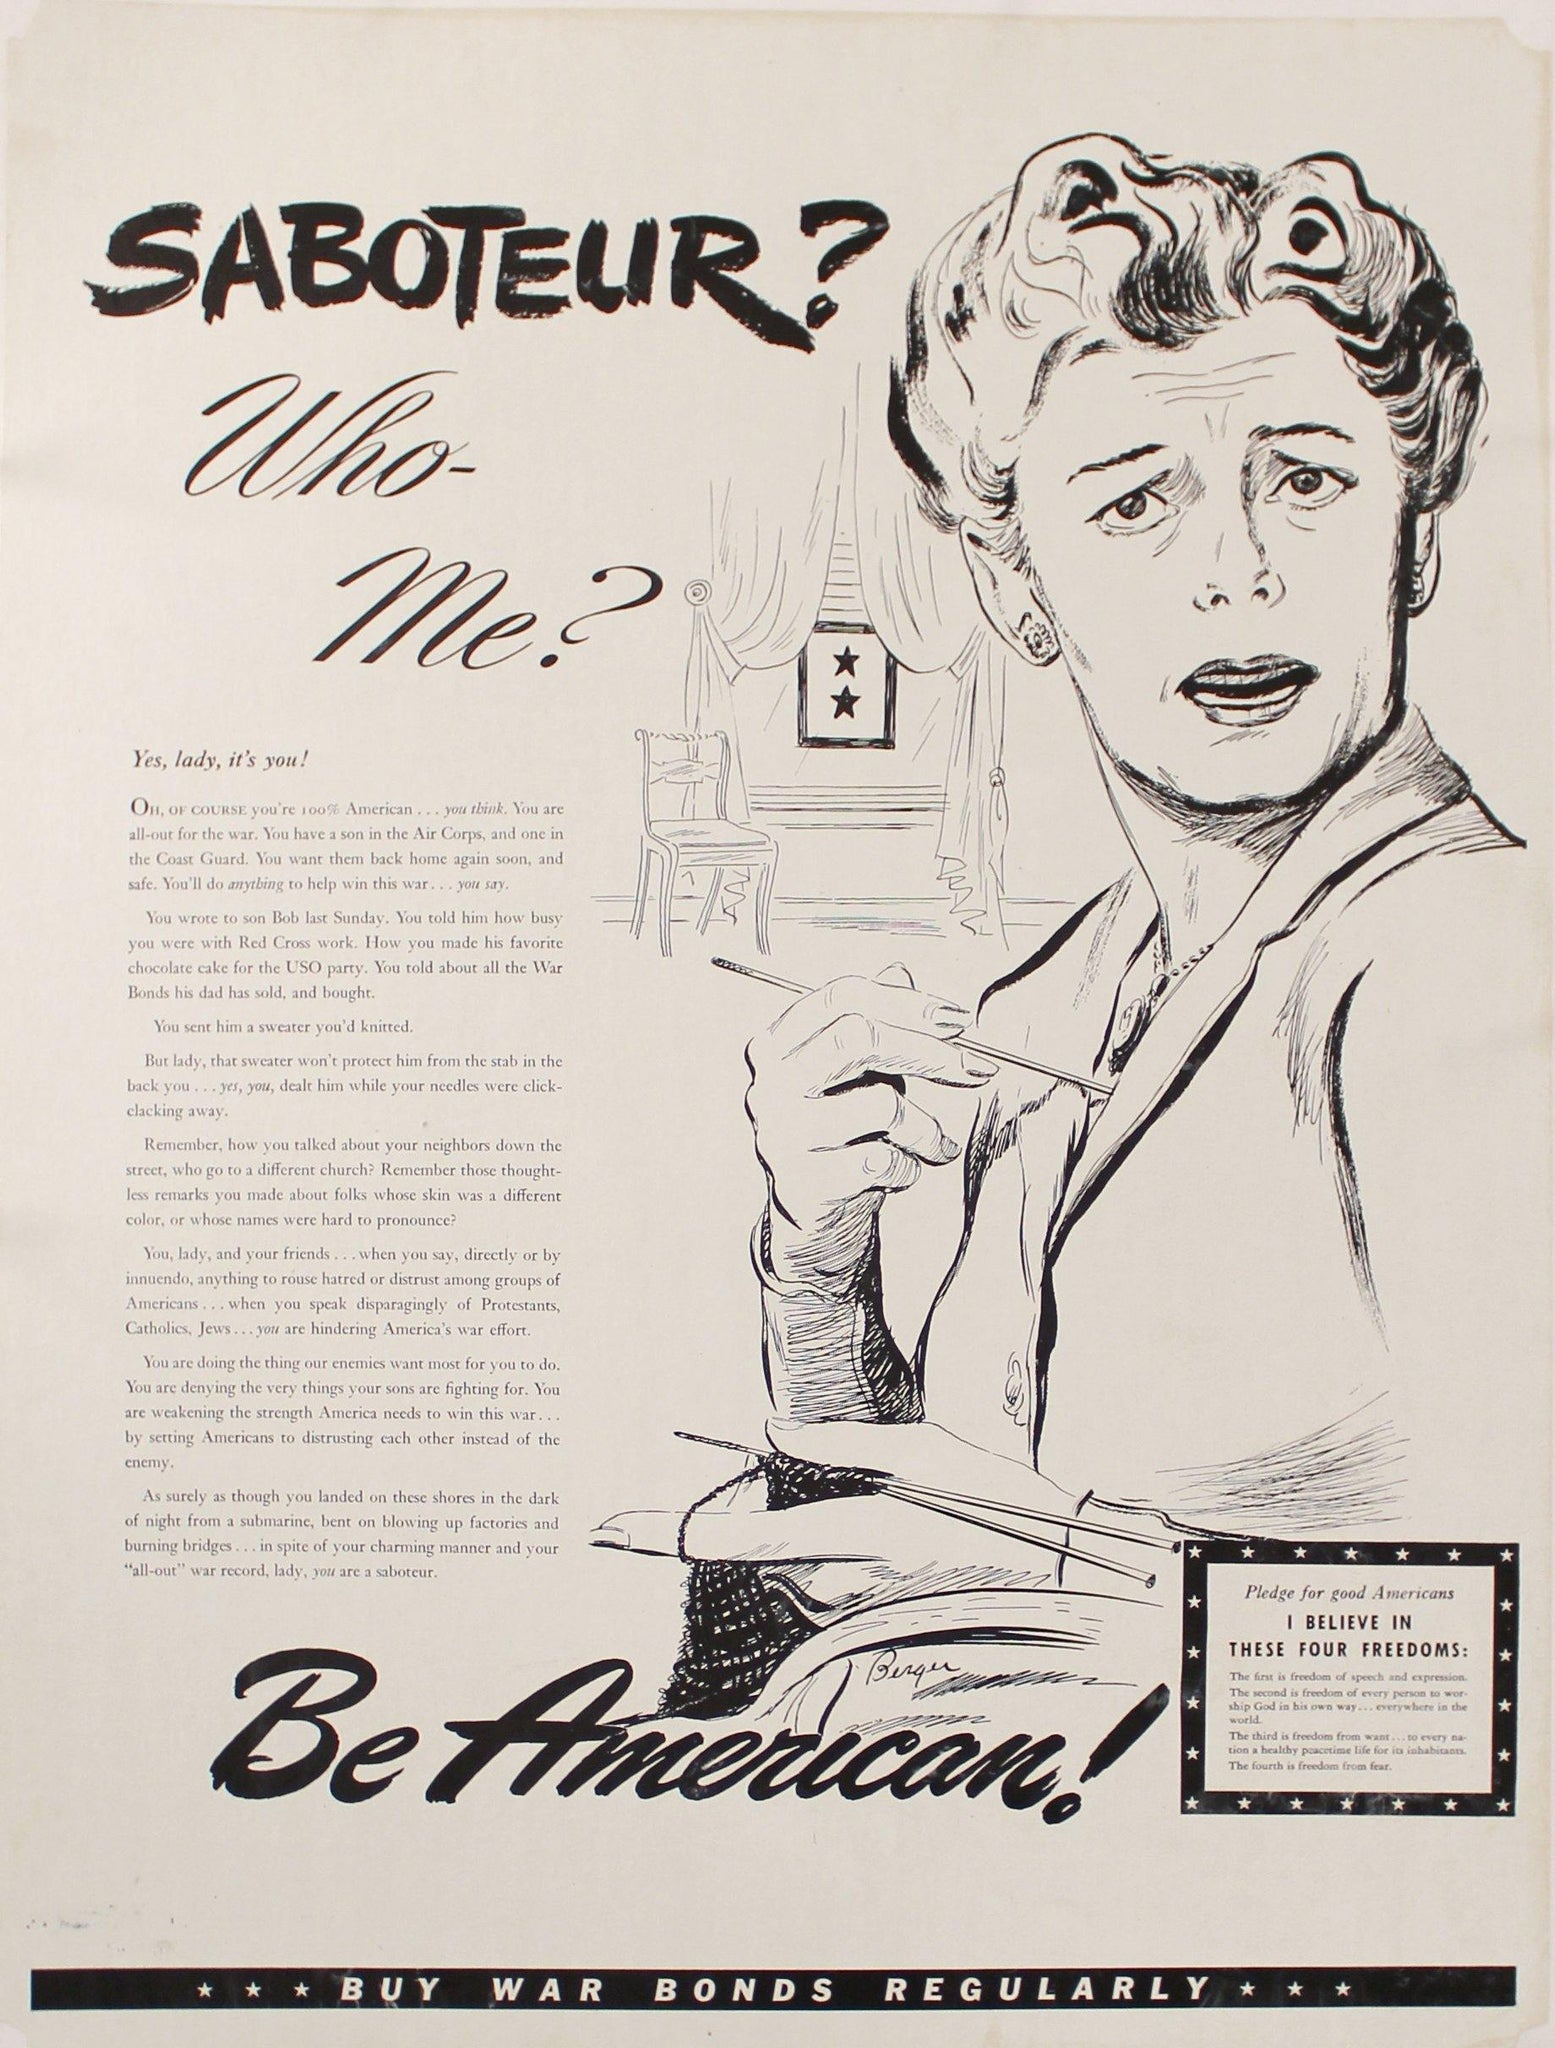 c. 1942 Saboteur? Who- Me? Be American! Buy War Bonds Regularly